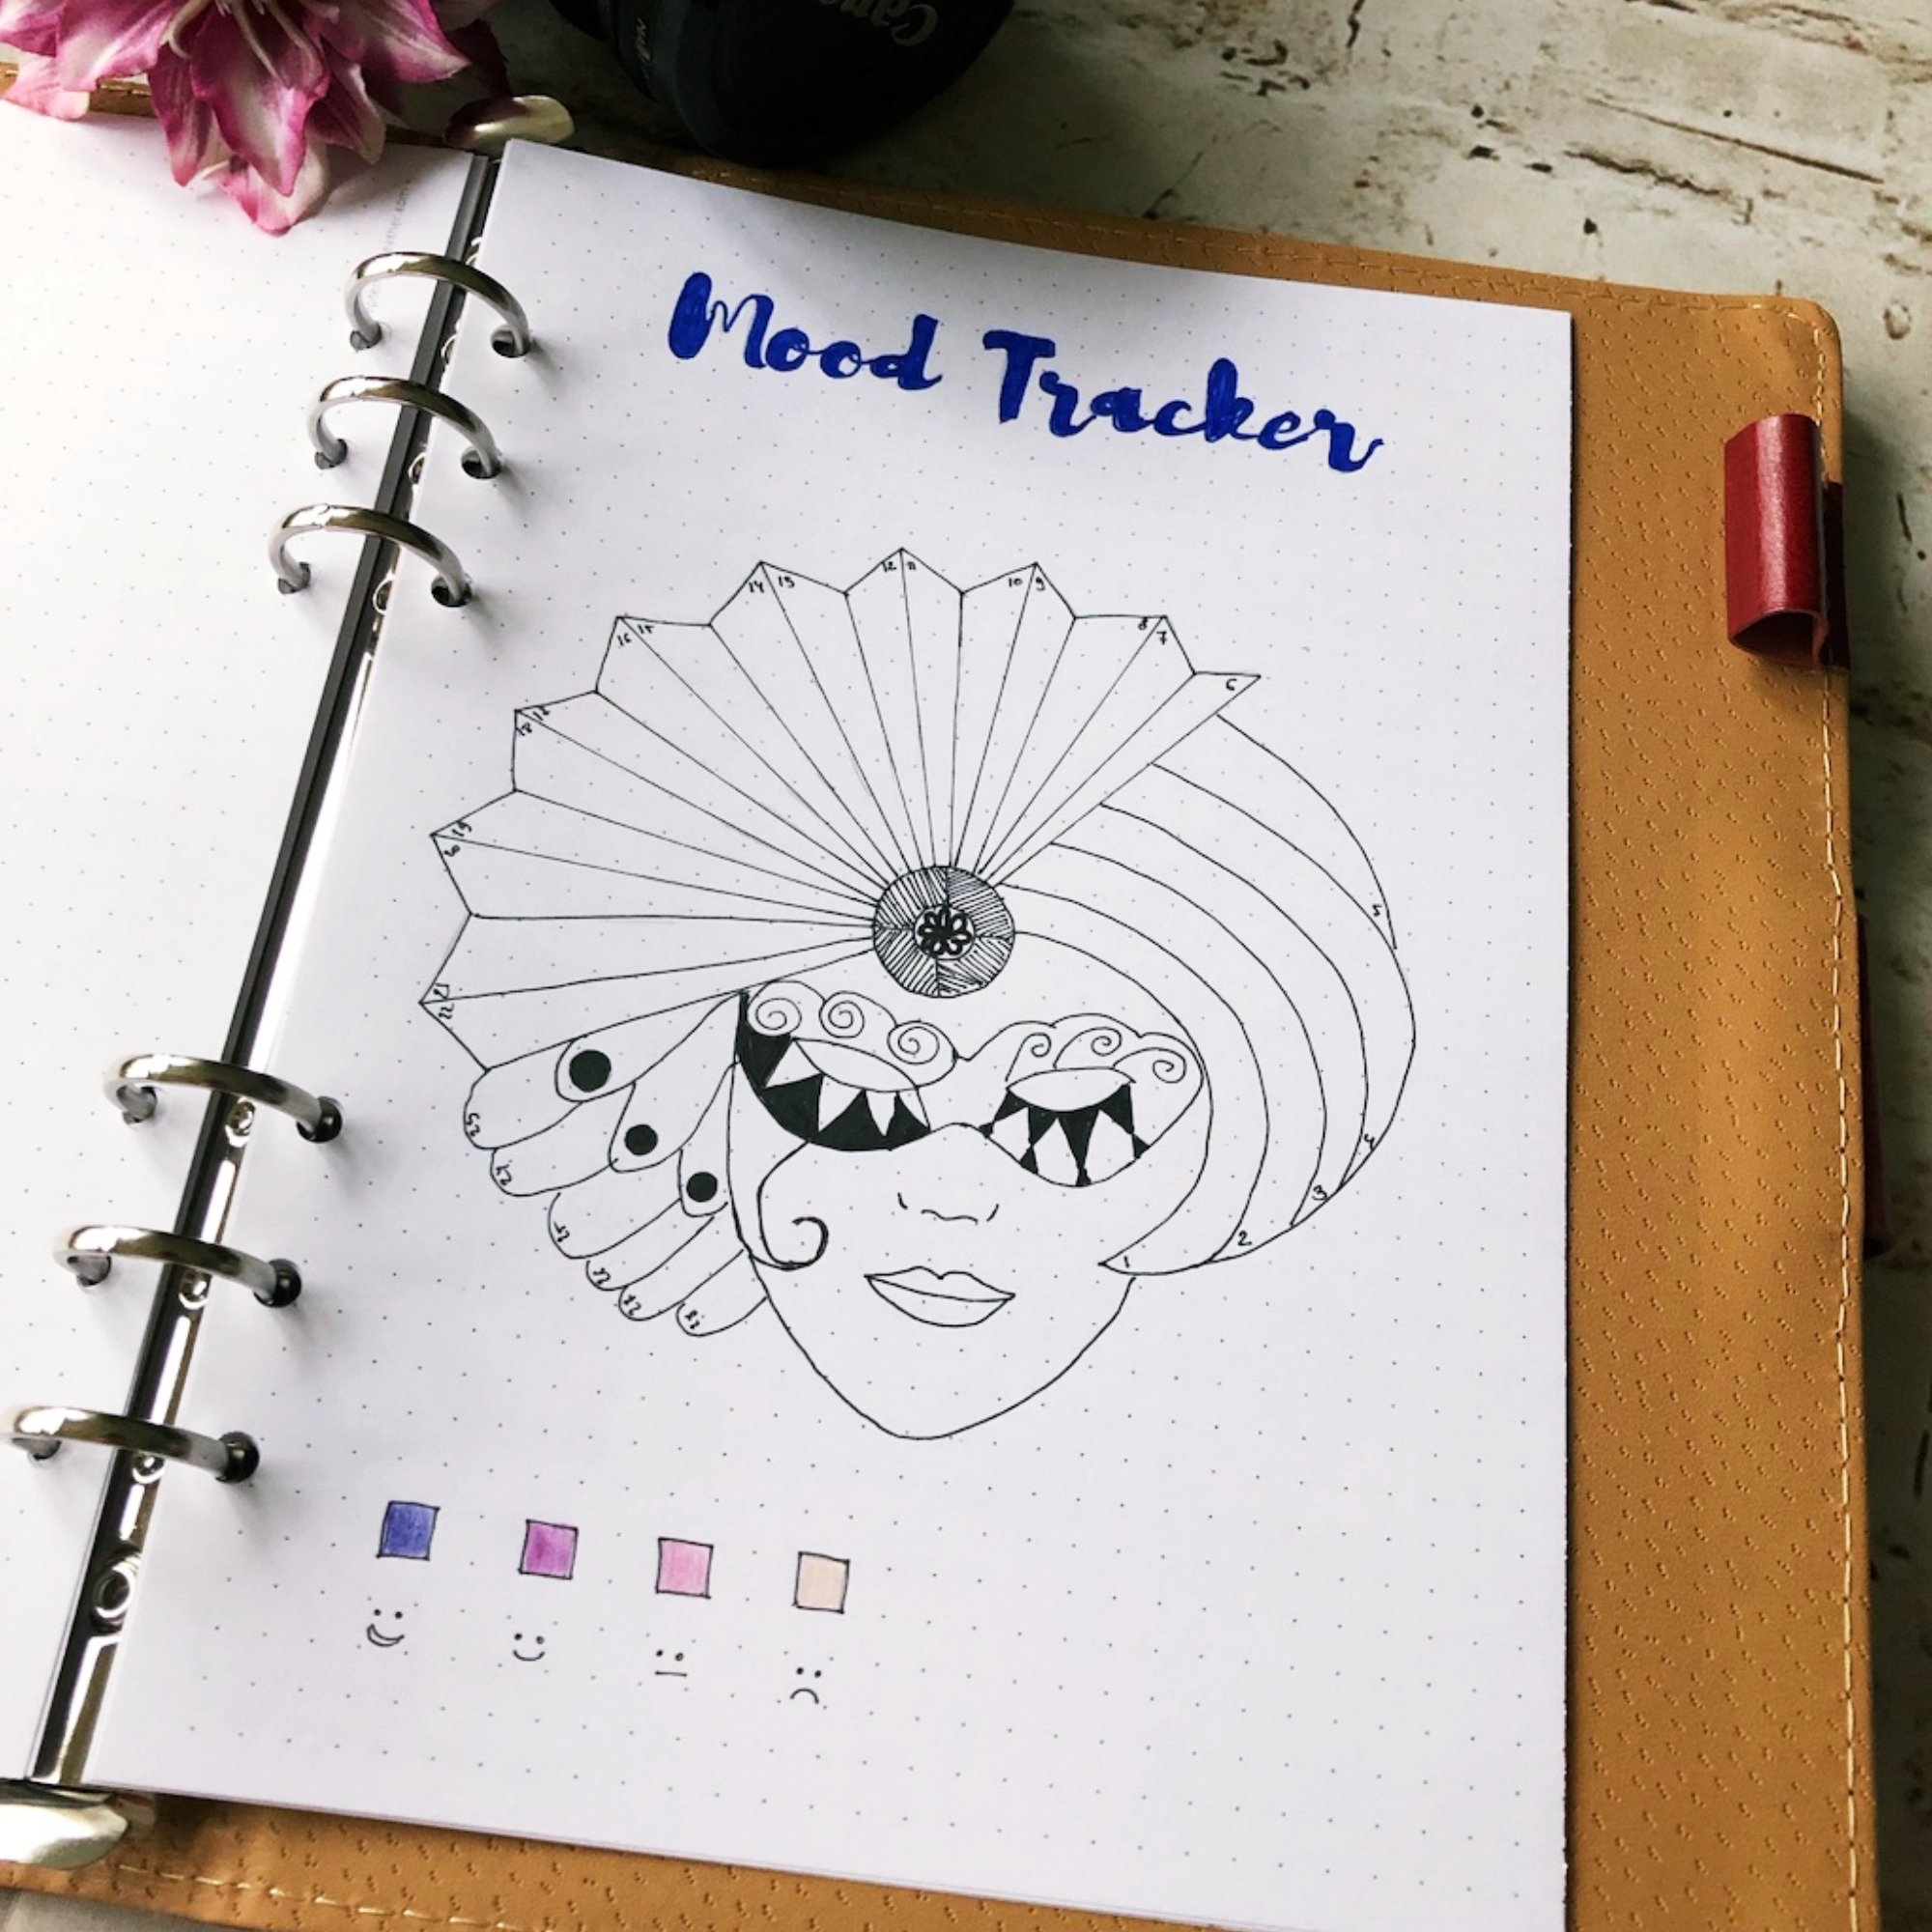 Mood tracker - Mask - itstartswithacoffee.com #moodtracker #tracker #journaling #planning #creativejournal #creativejournaling